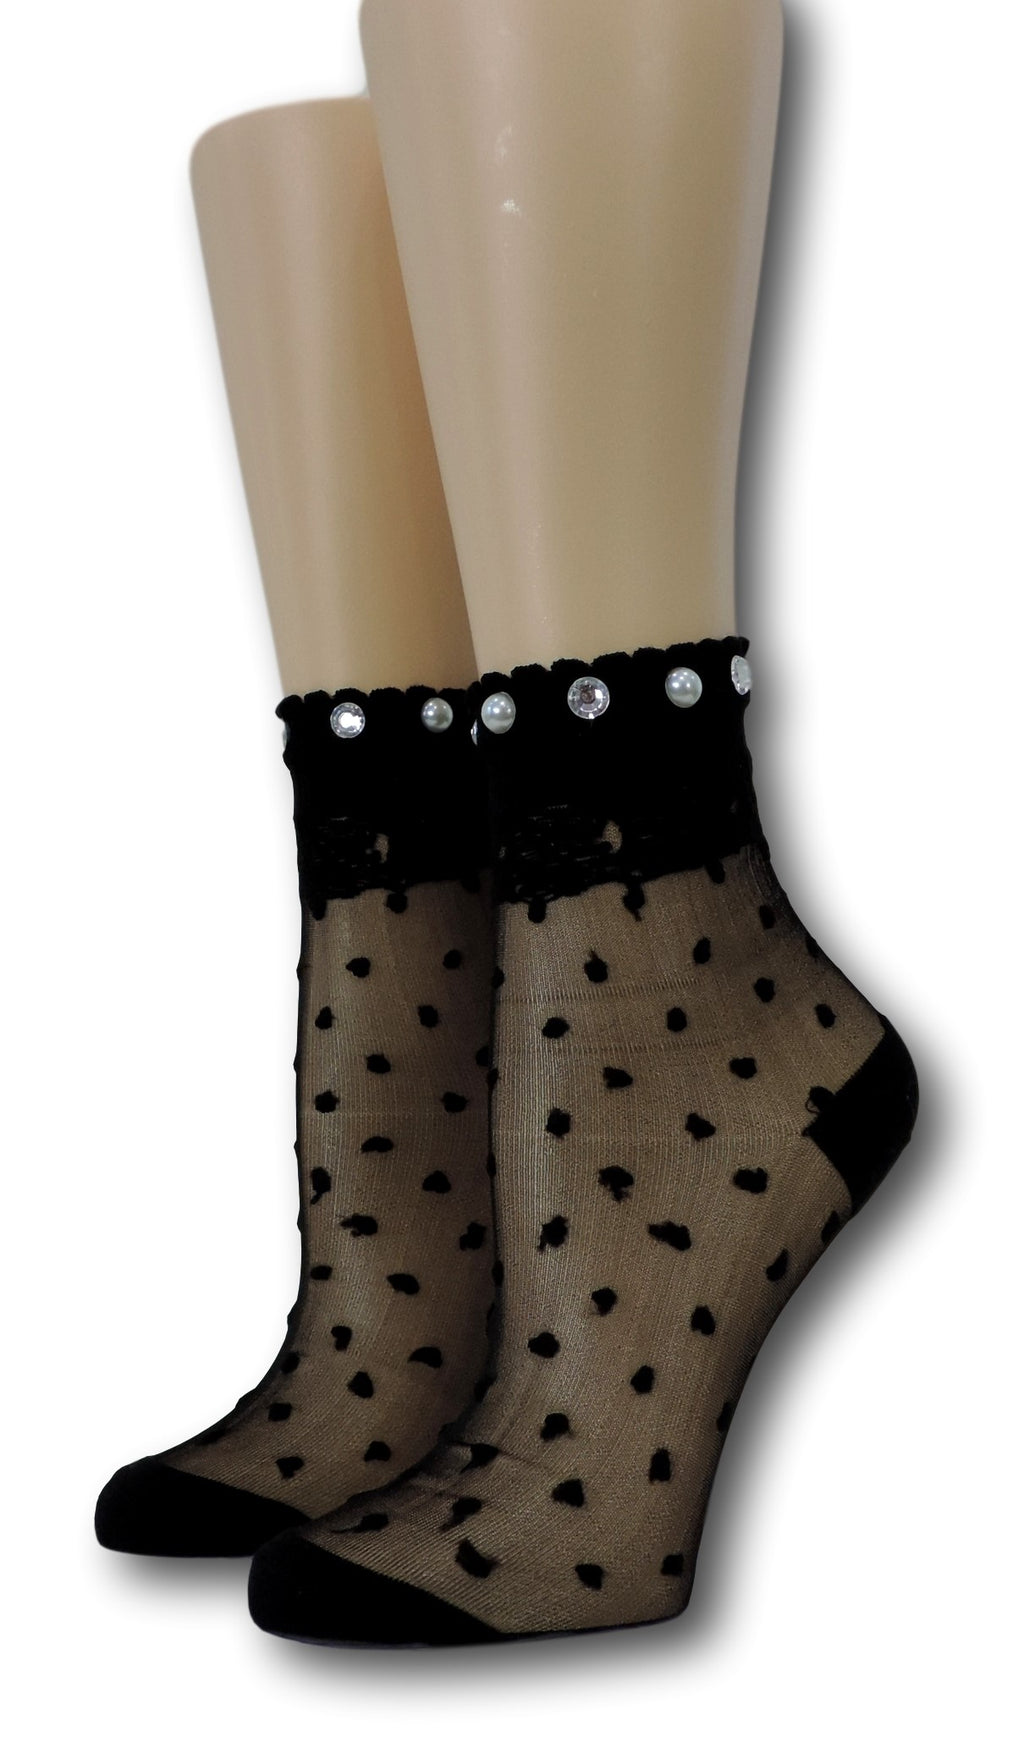 Ivory Royal Dotted Sheer Socks with beads